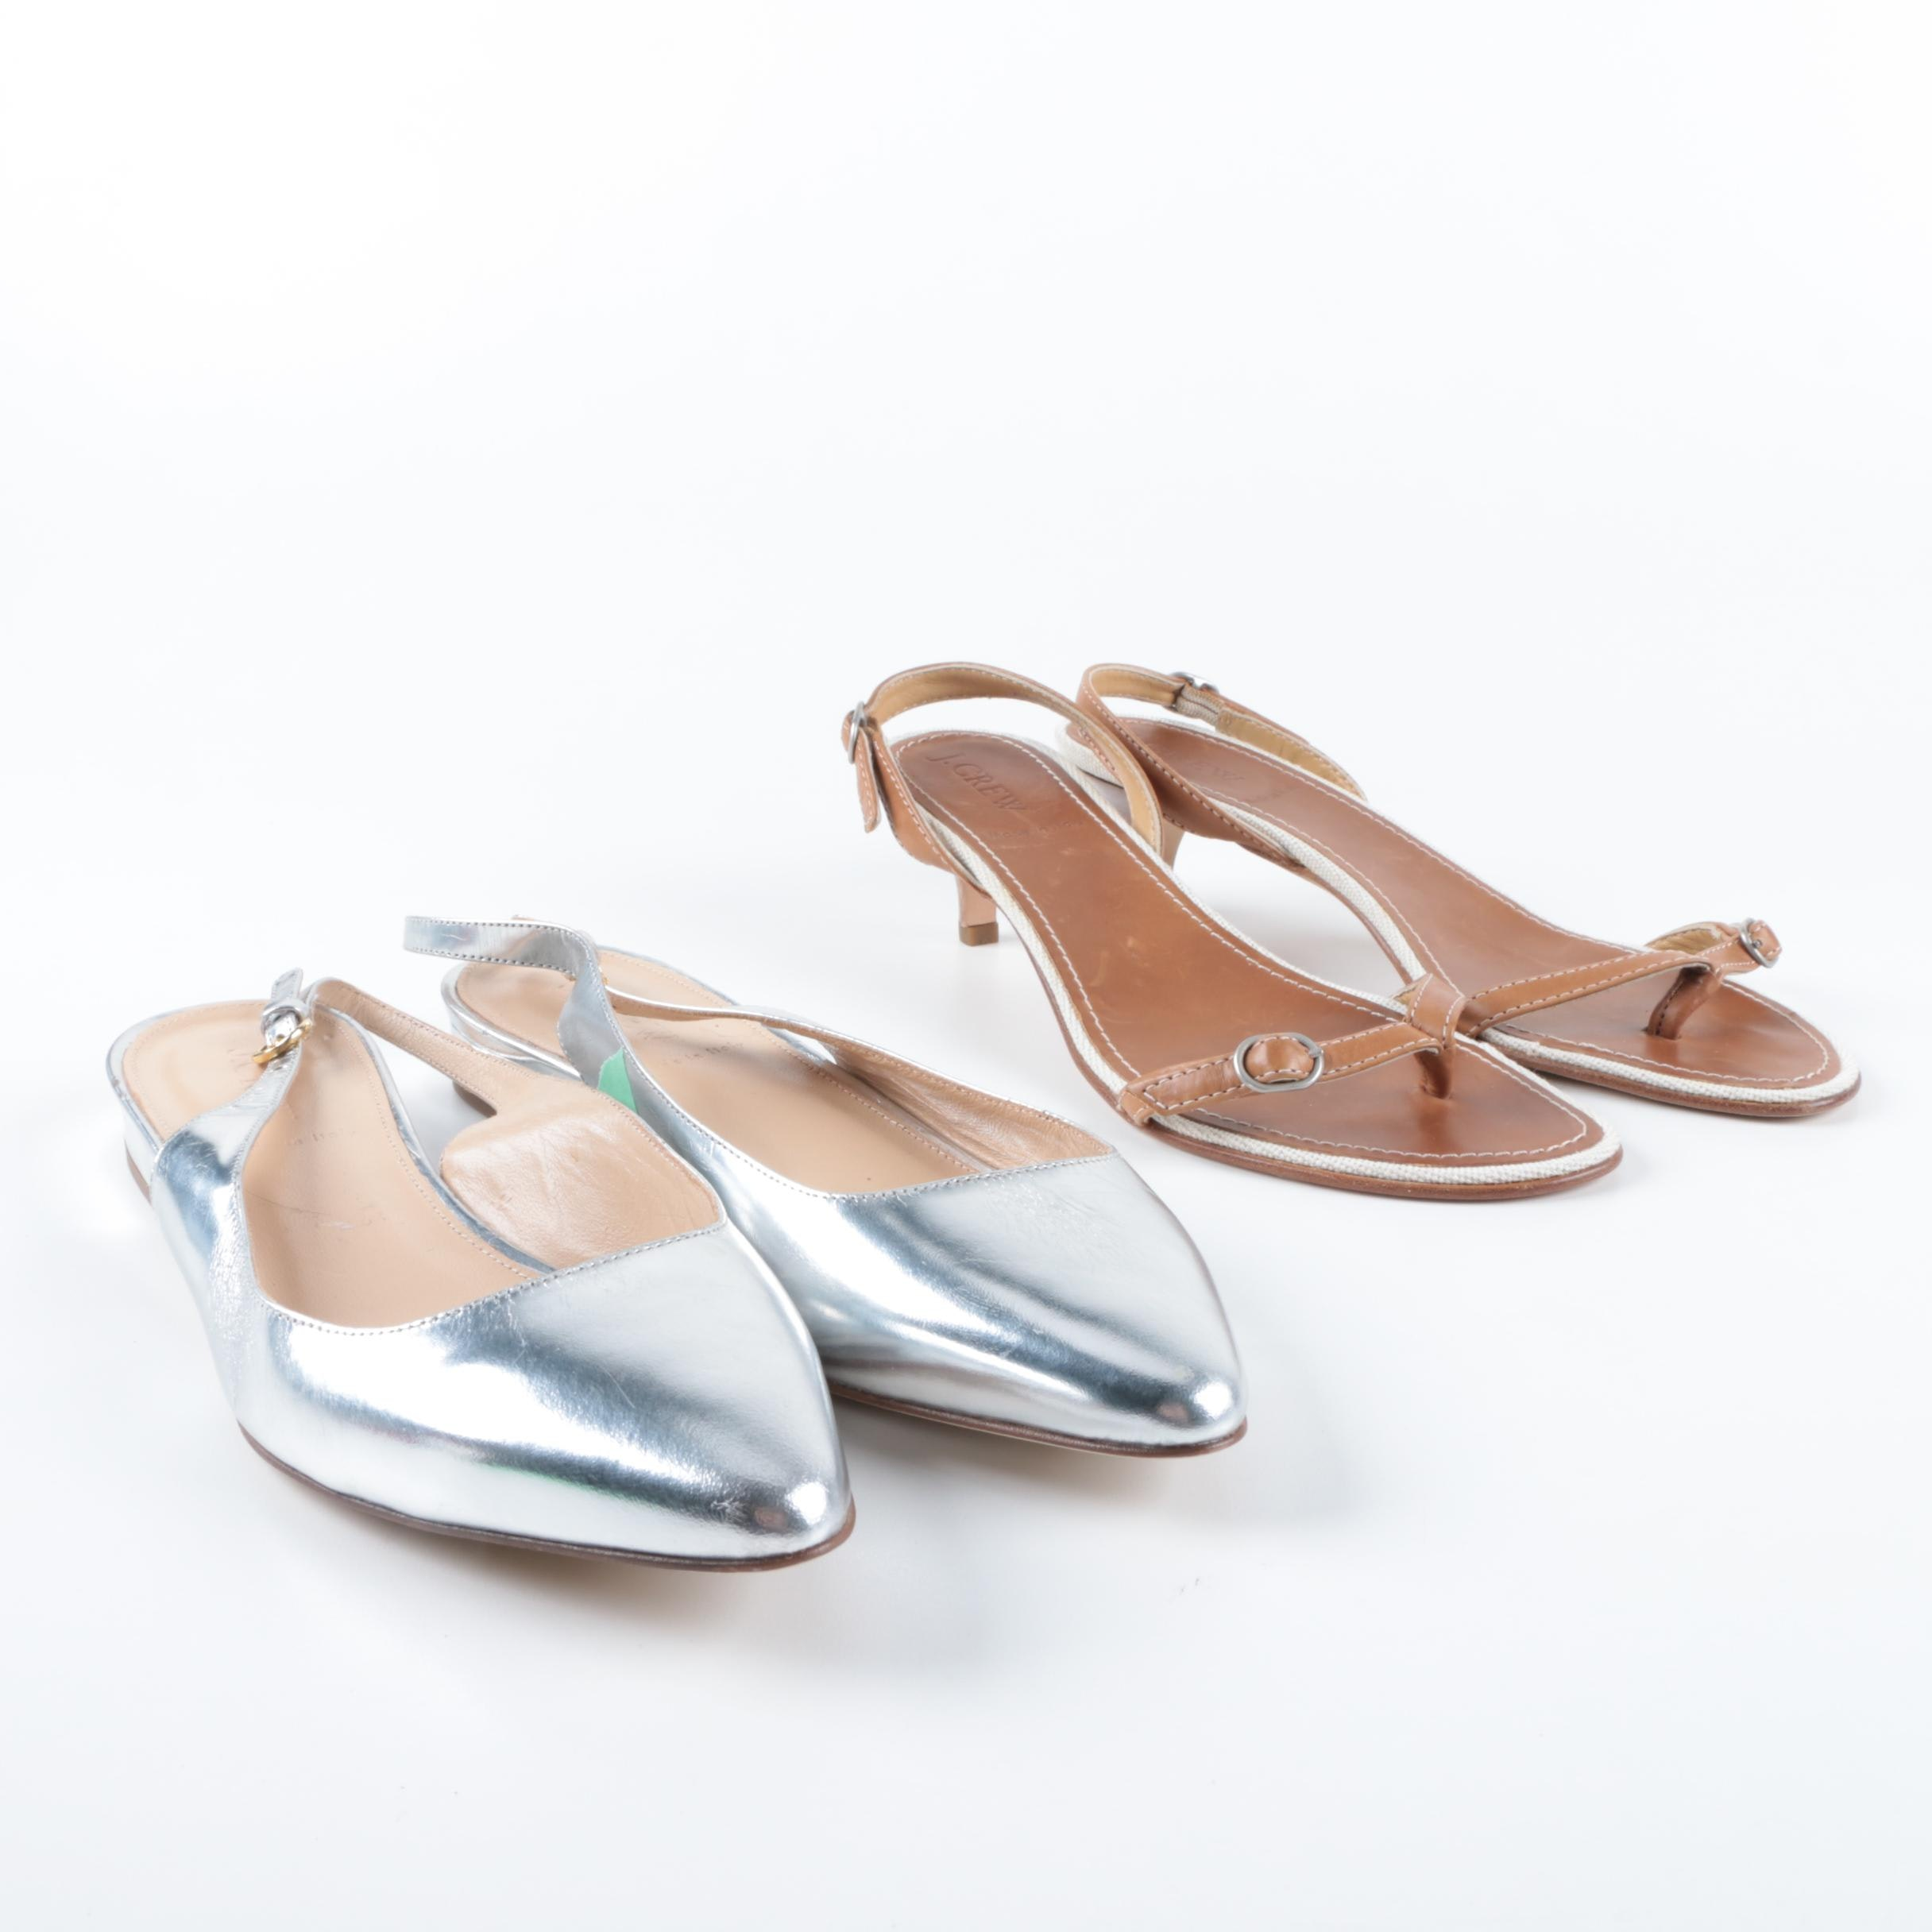 Women's J. Crew Leather Slingback Kitten Heels and Metallic Silver Flats